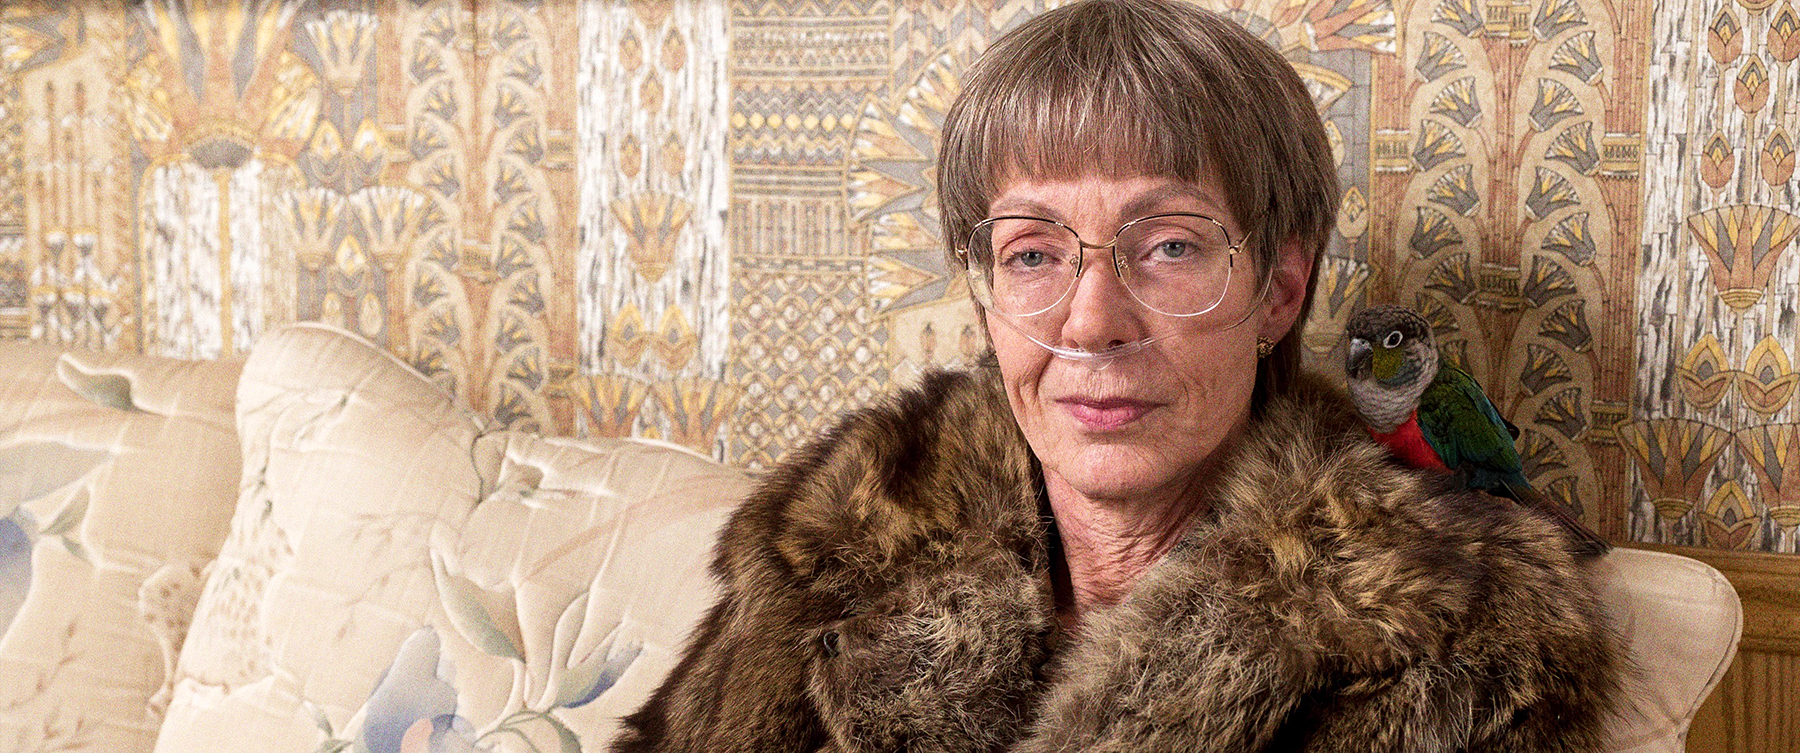 Alison Janney I, Tonya Best Supporting Actress Oscars 2018 prediction